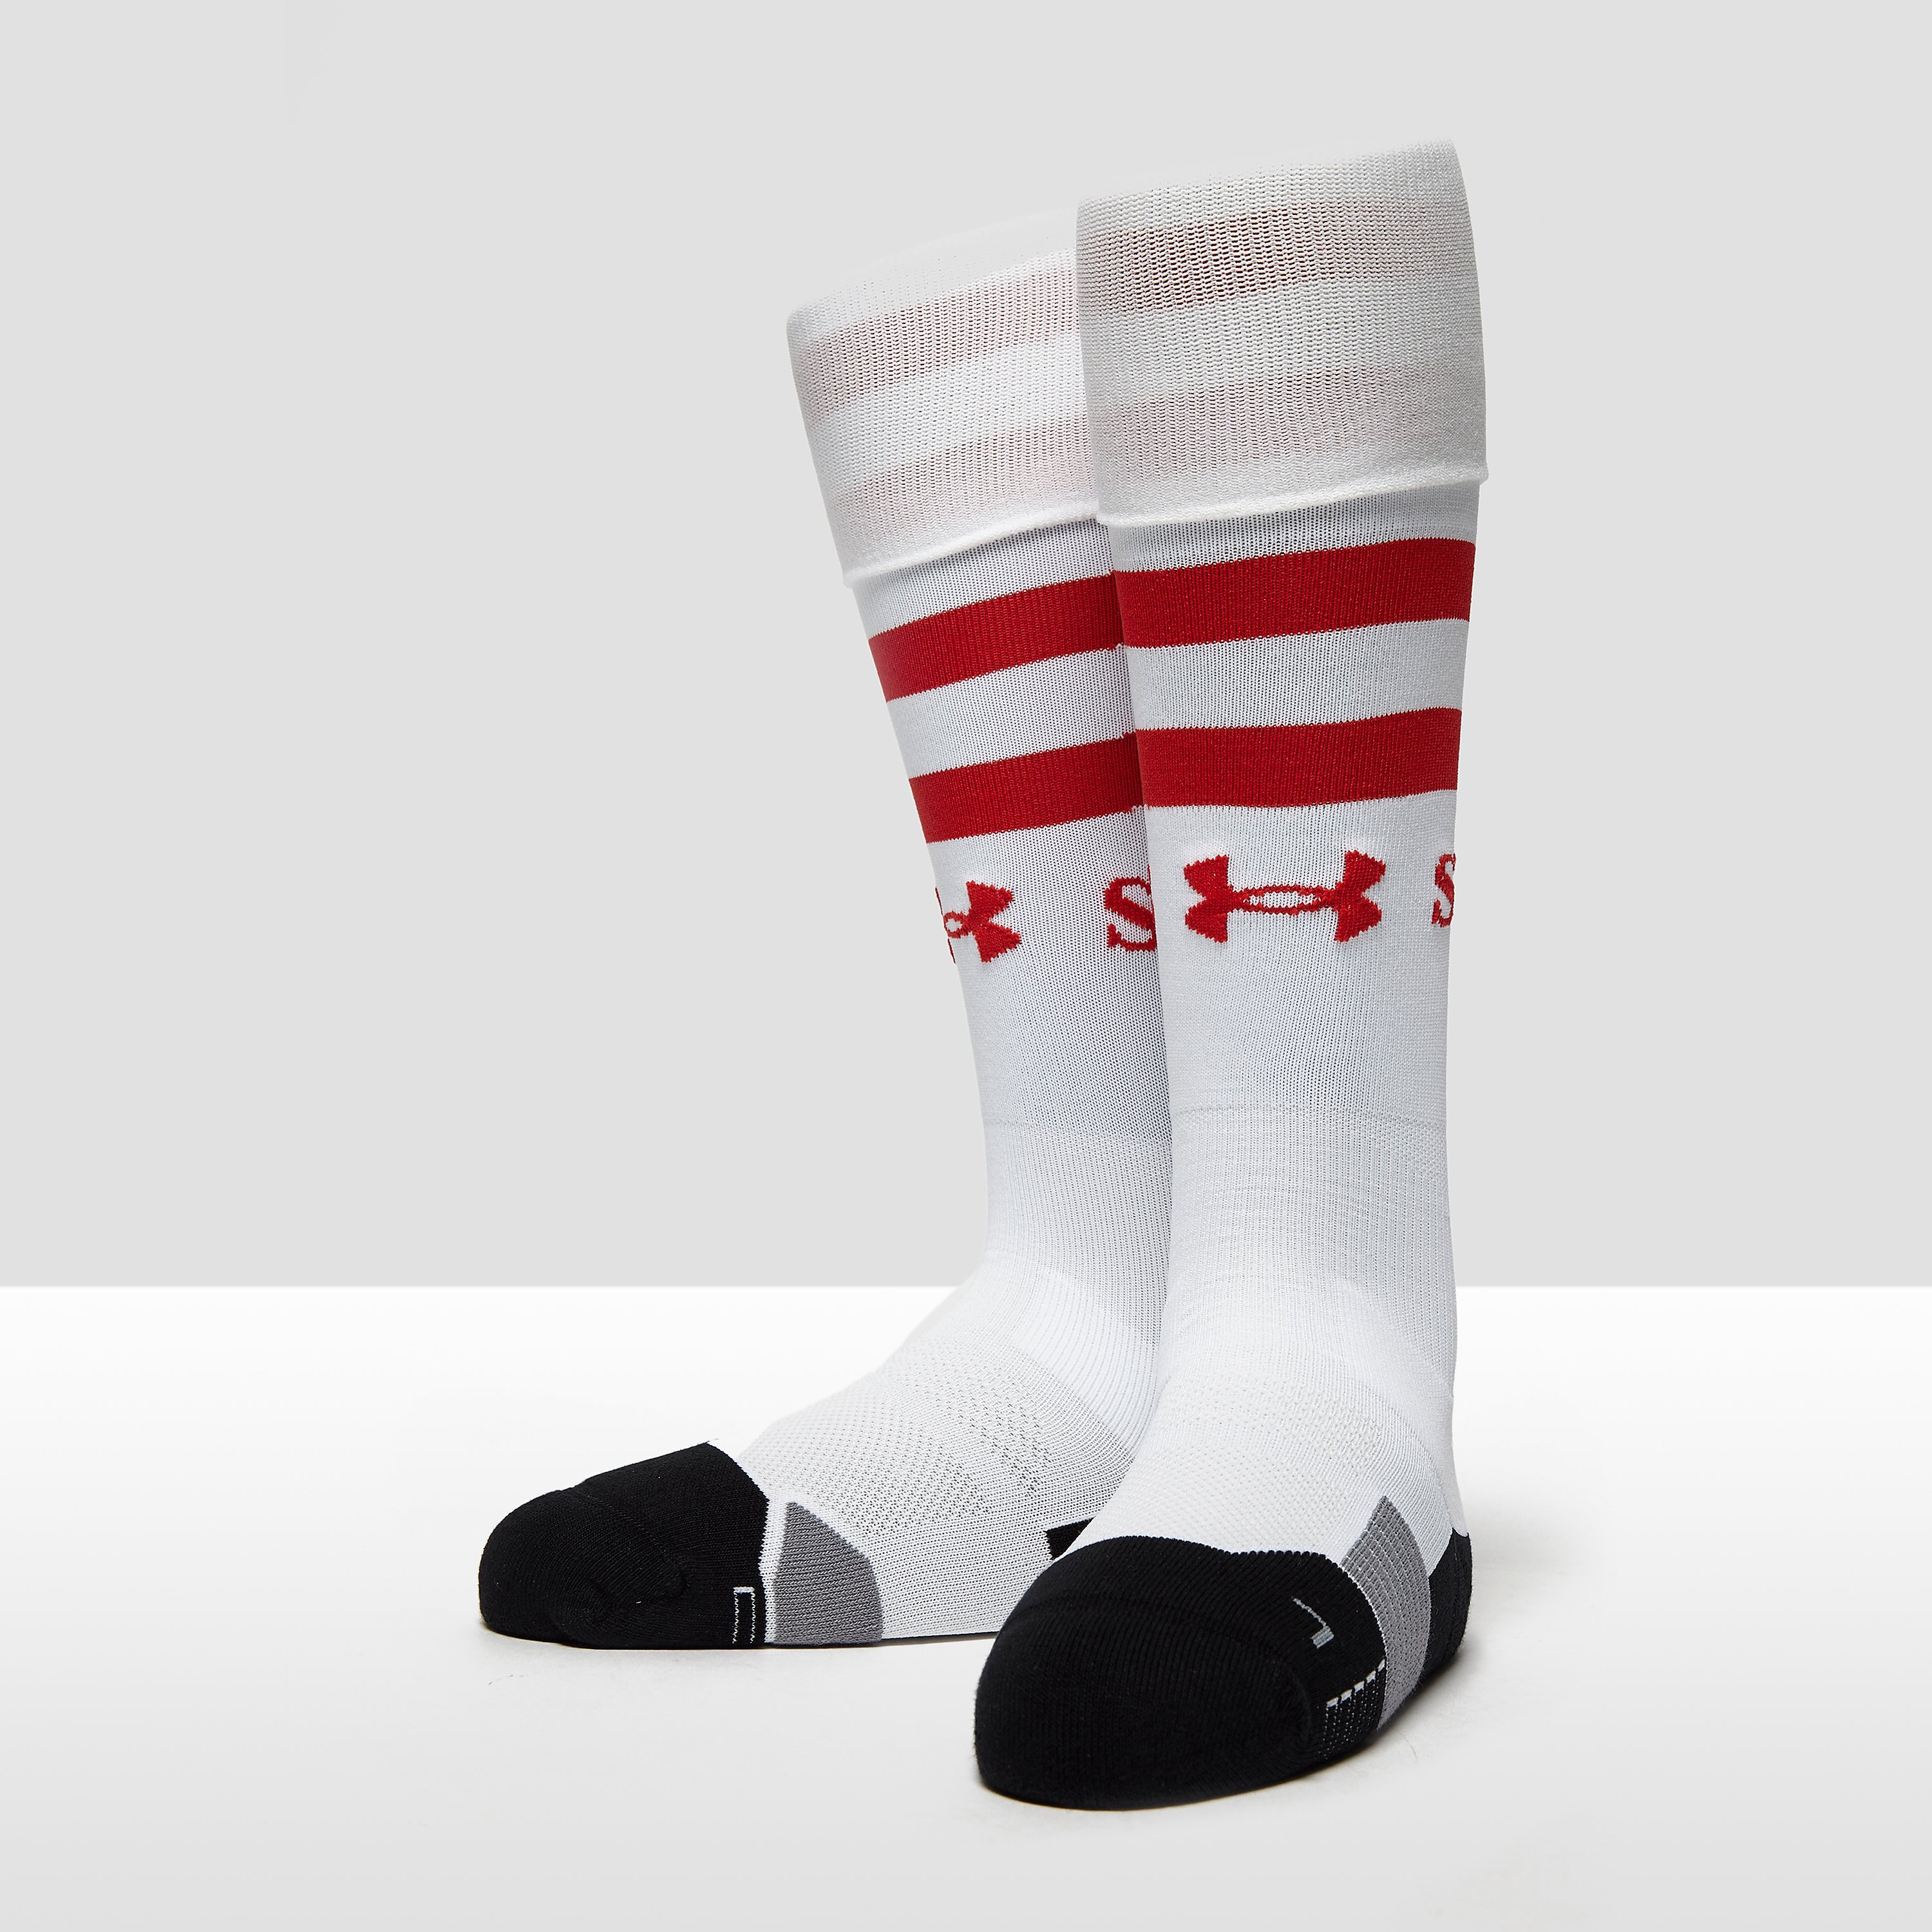 Under Armour Southampton FC 2016/17 Home Socks